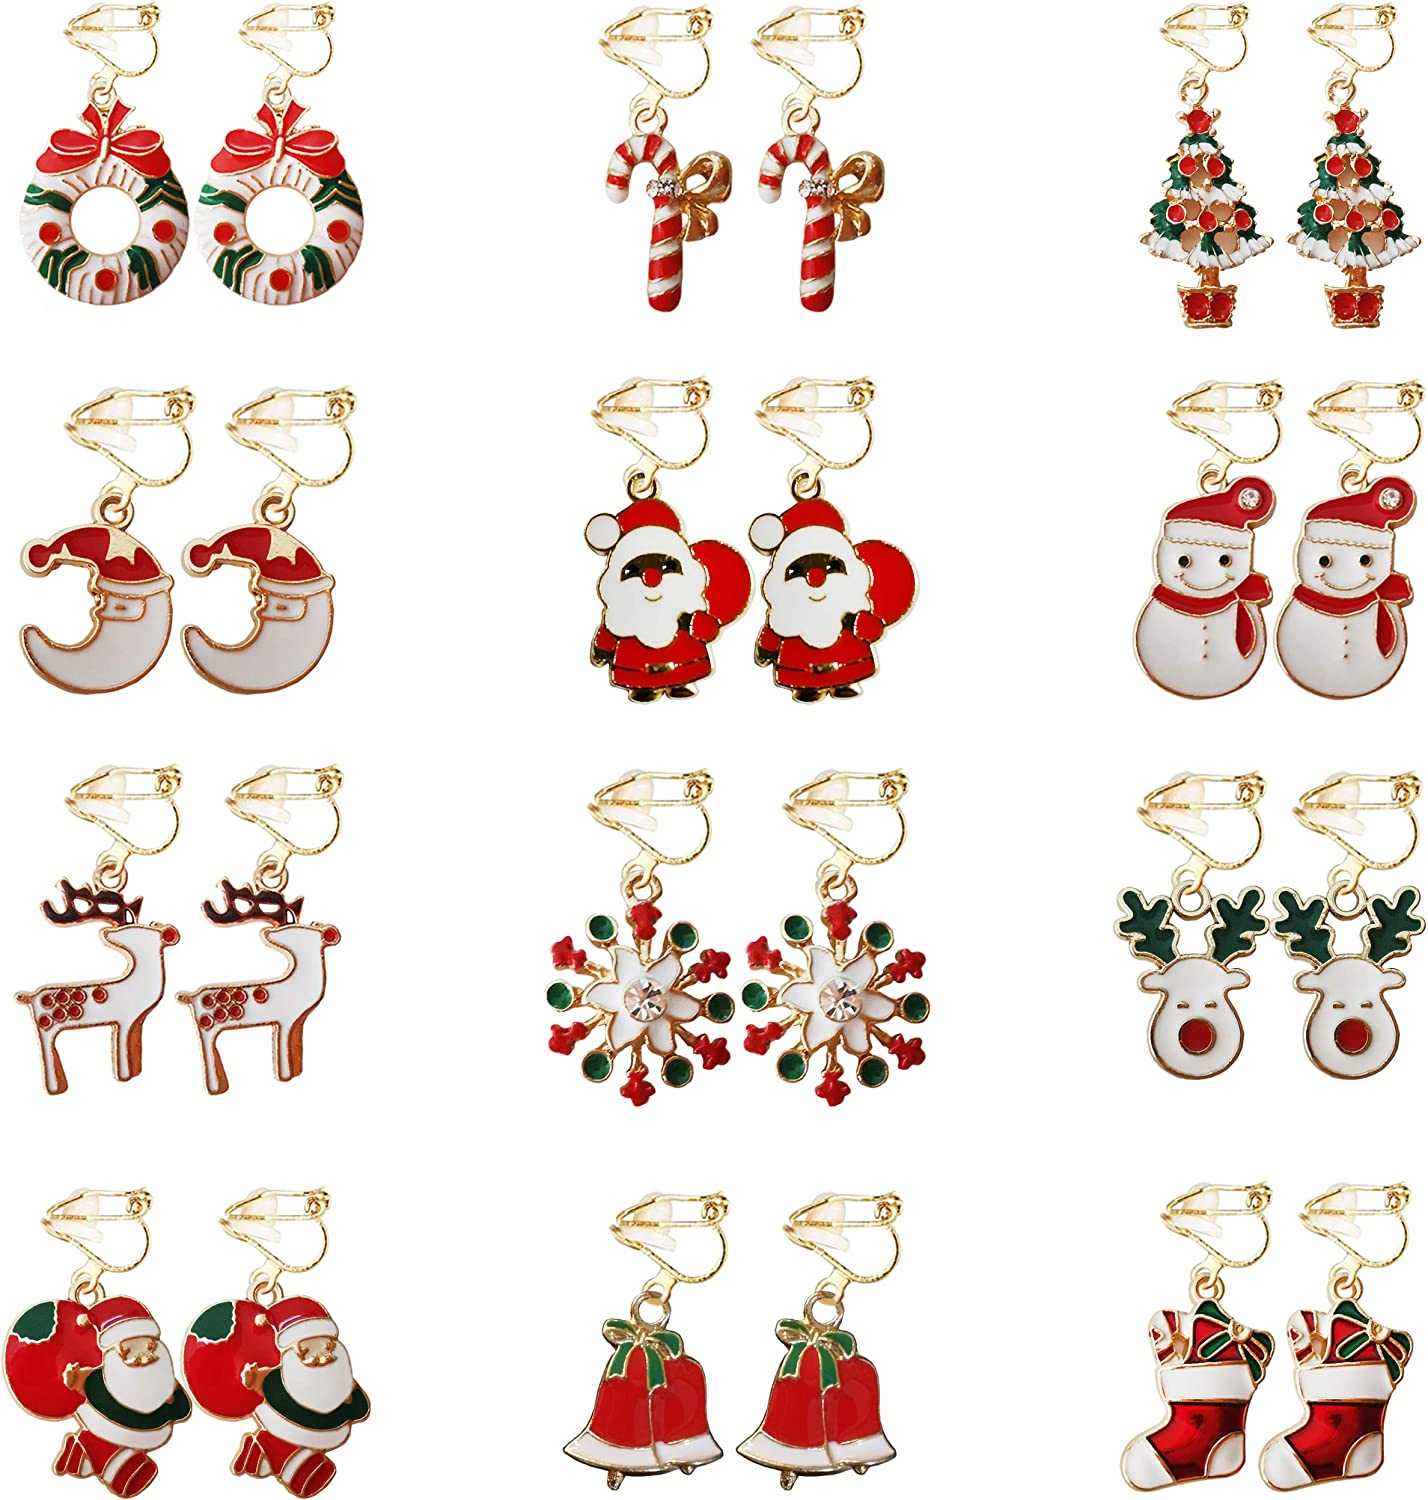 12 Pairs Christmas Earrings for Women Girls Clip On Earrings Thanksgiving Xmas Holiday Jewelry Drop Dangle Earrings Set with Santa Claus Elk Snowman Stocking Tree Bell Design